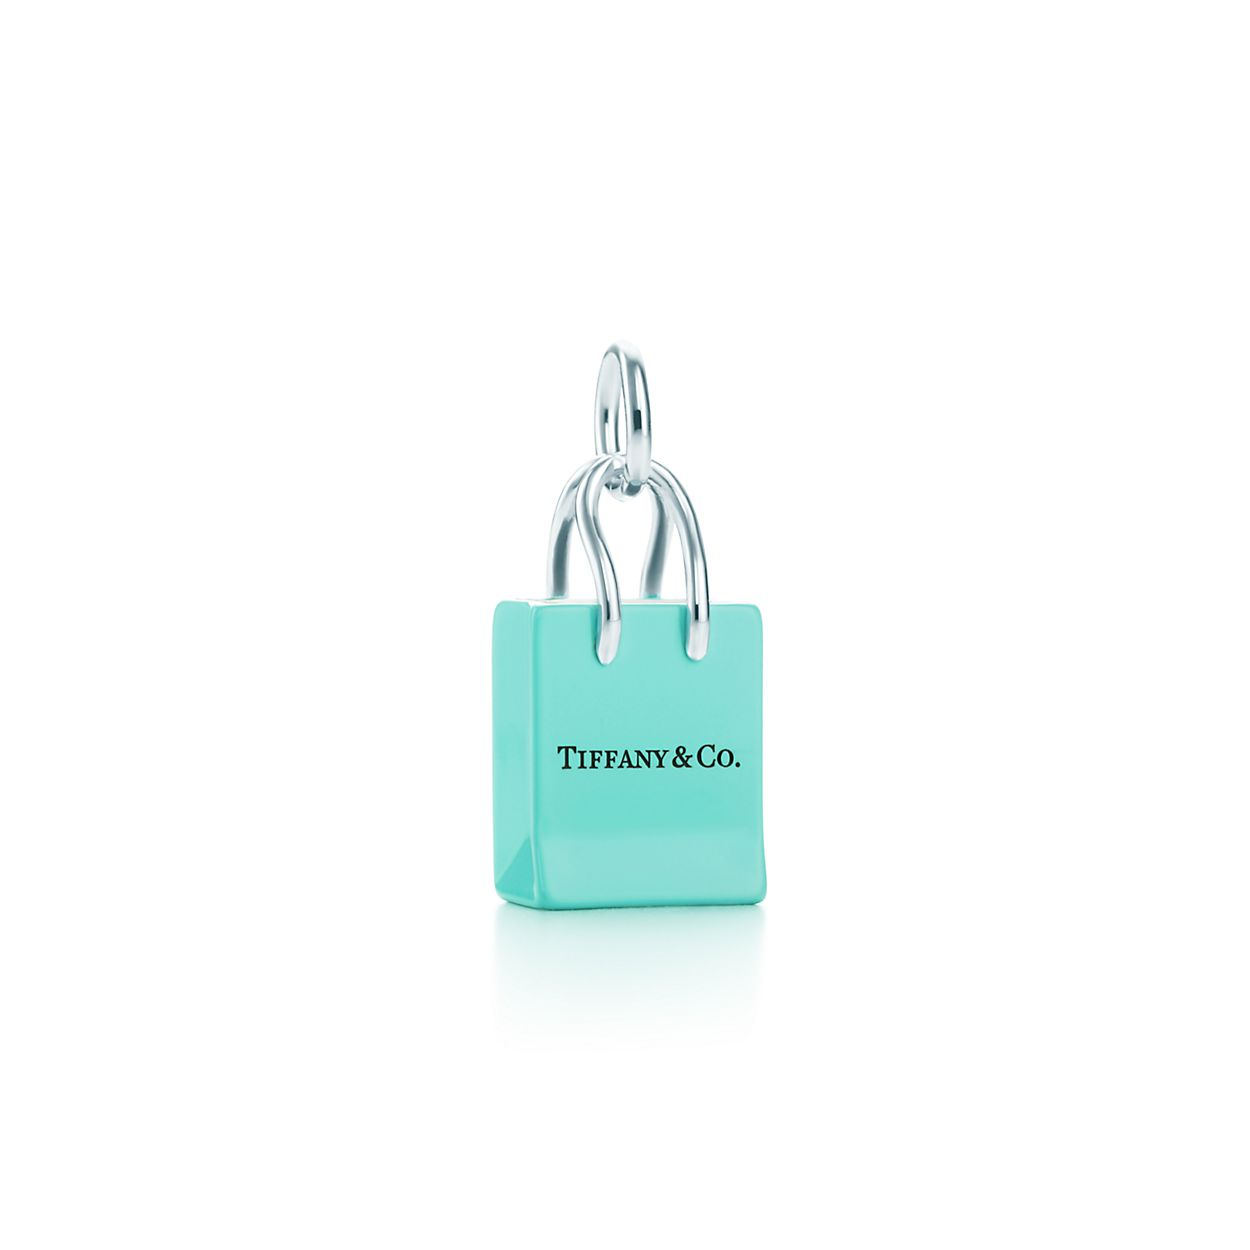 tiffany co shopping bag charm in sterling silver with enamel